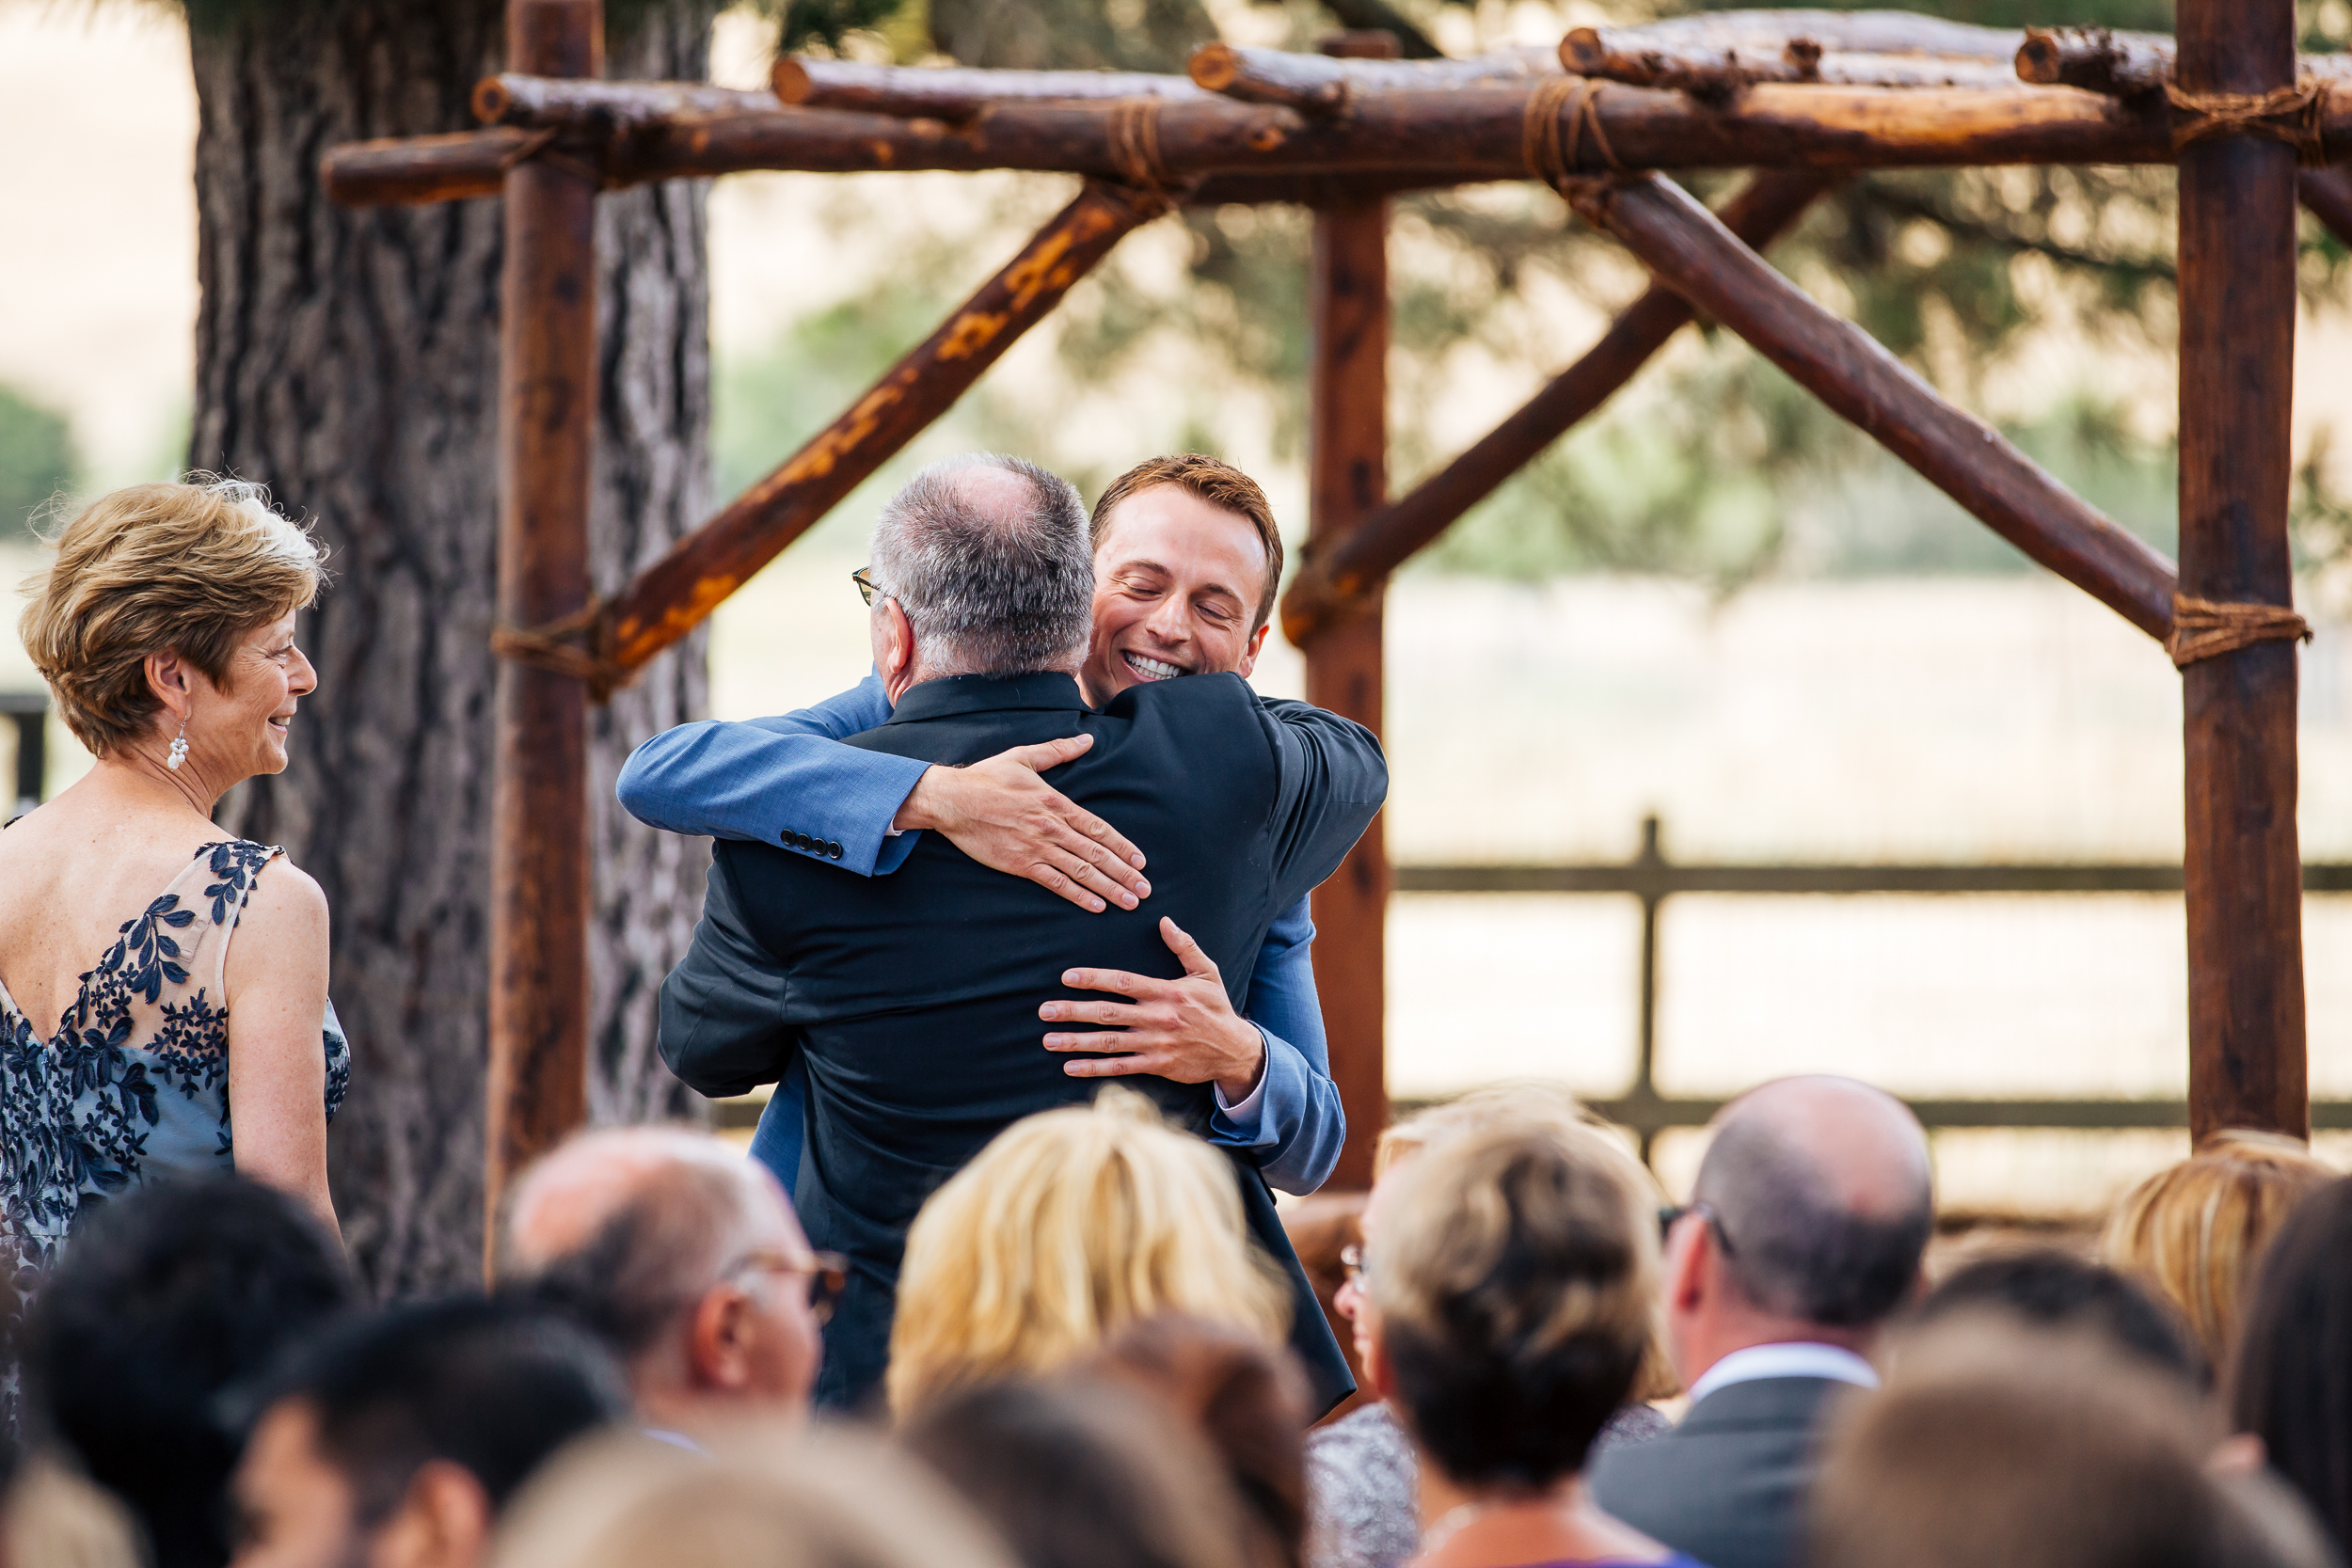 Rancho Nicasio Wedding 2018-143.jpg